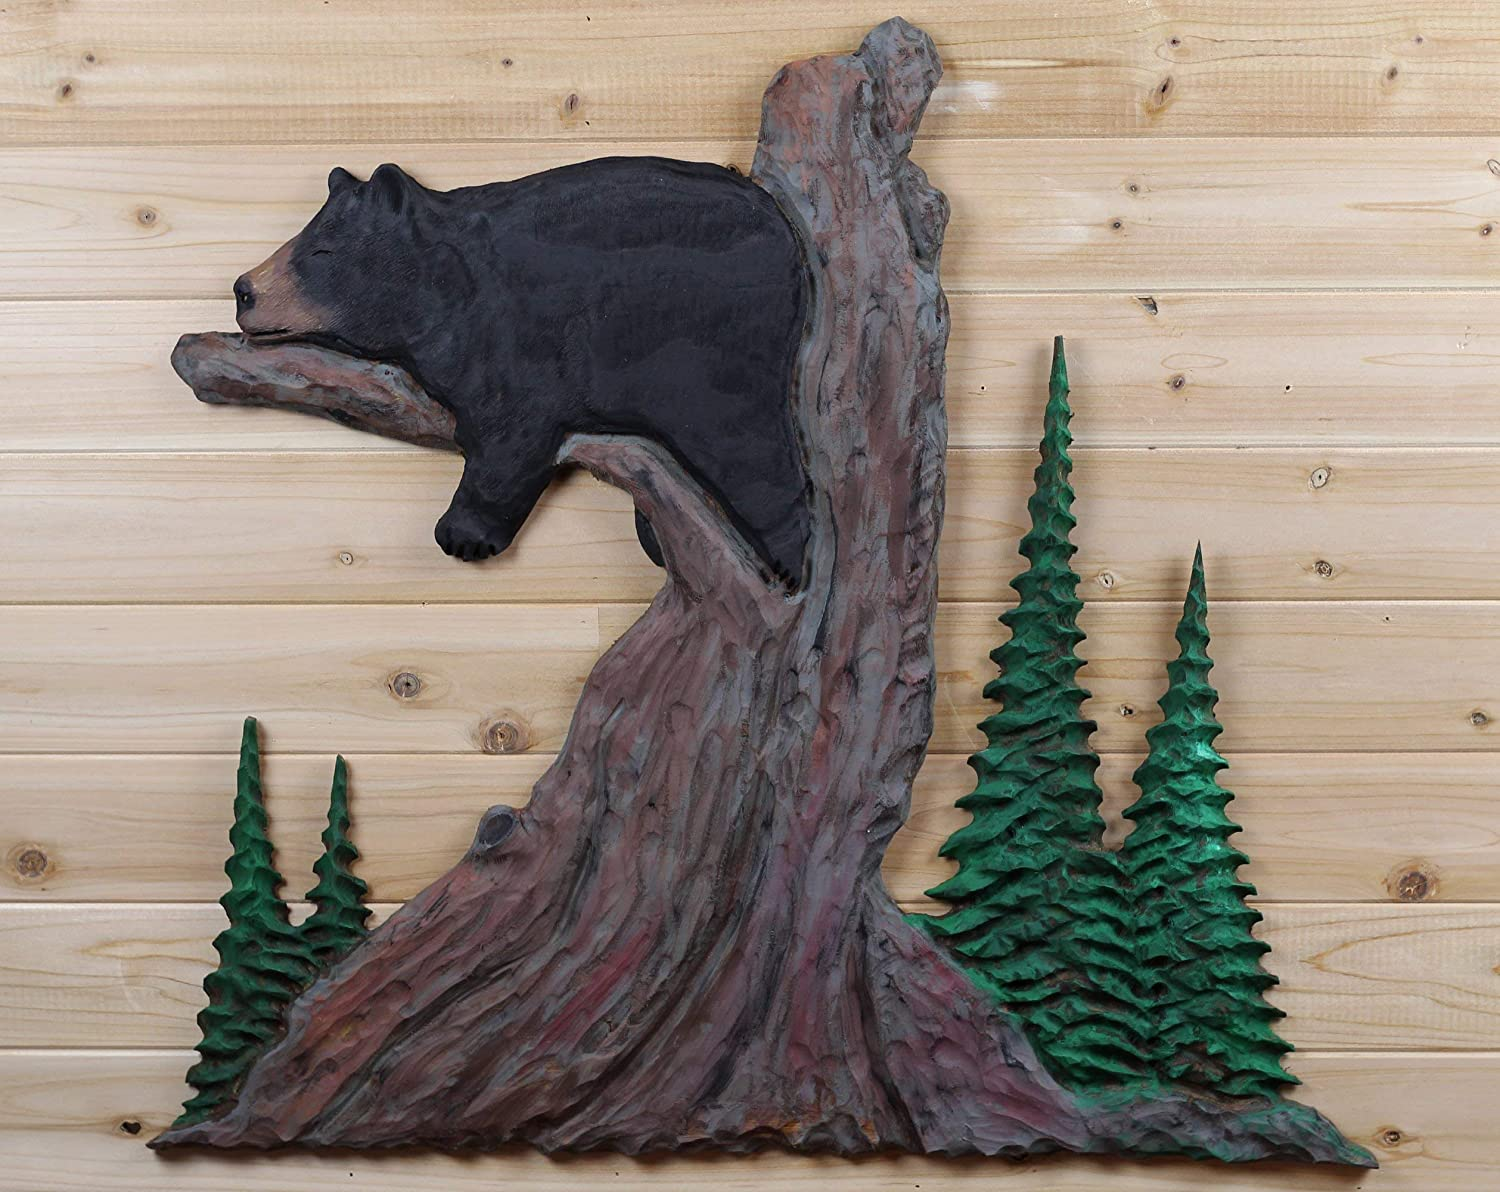 Black Bear Wood Carving Sculpture Cabin Rustic Decor